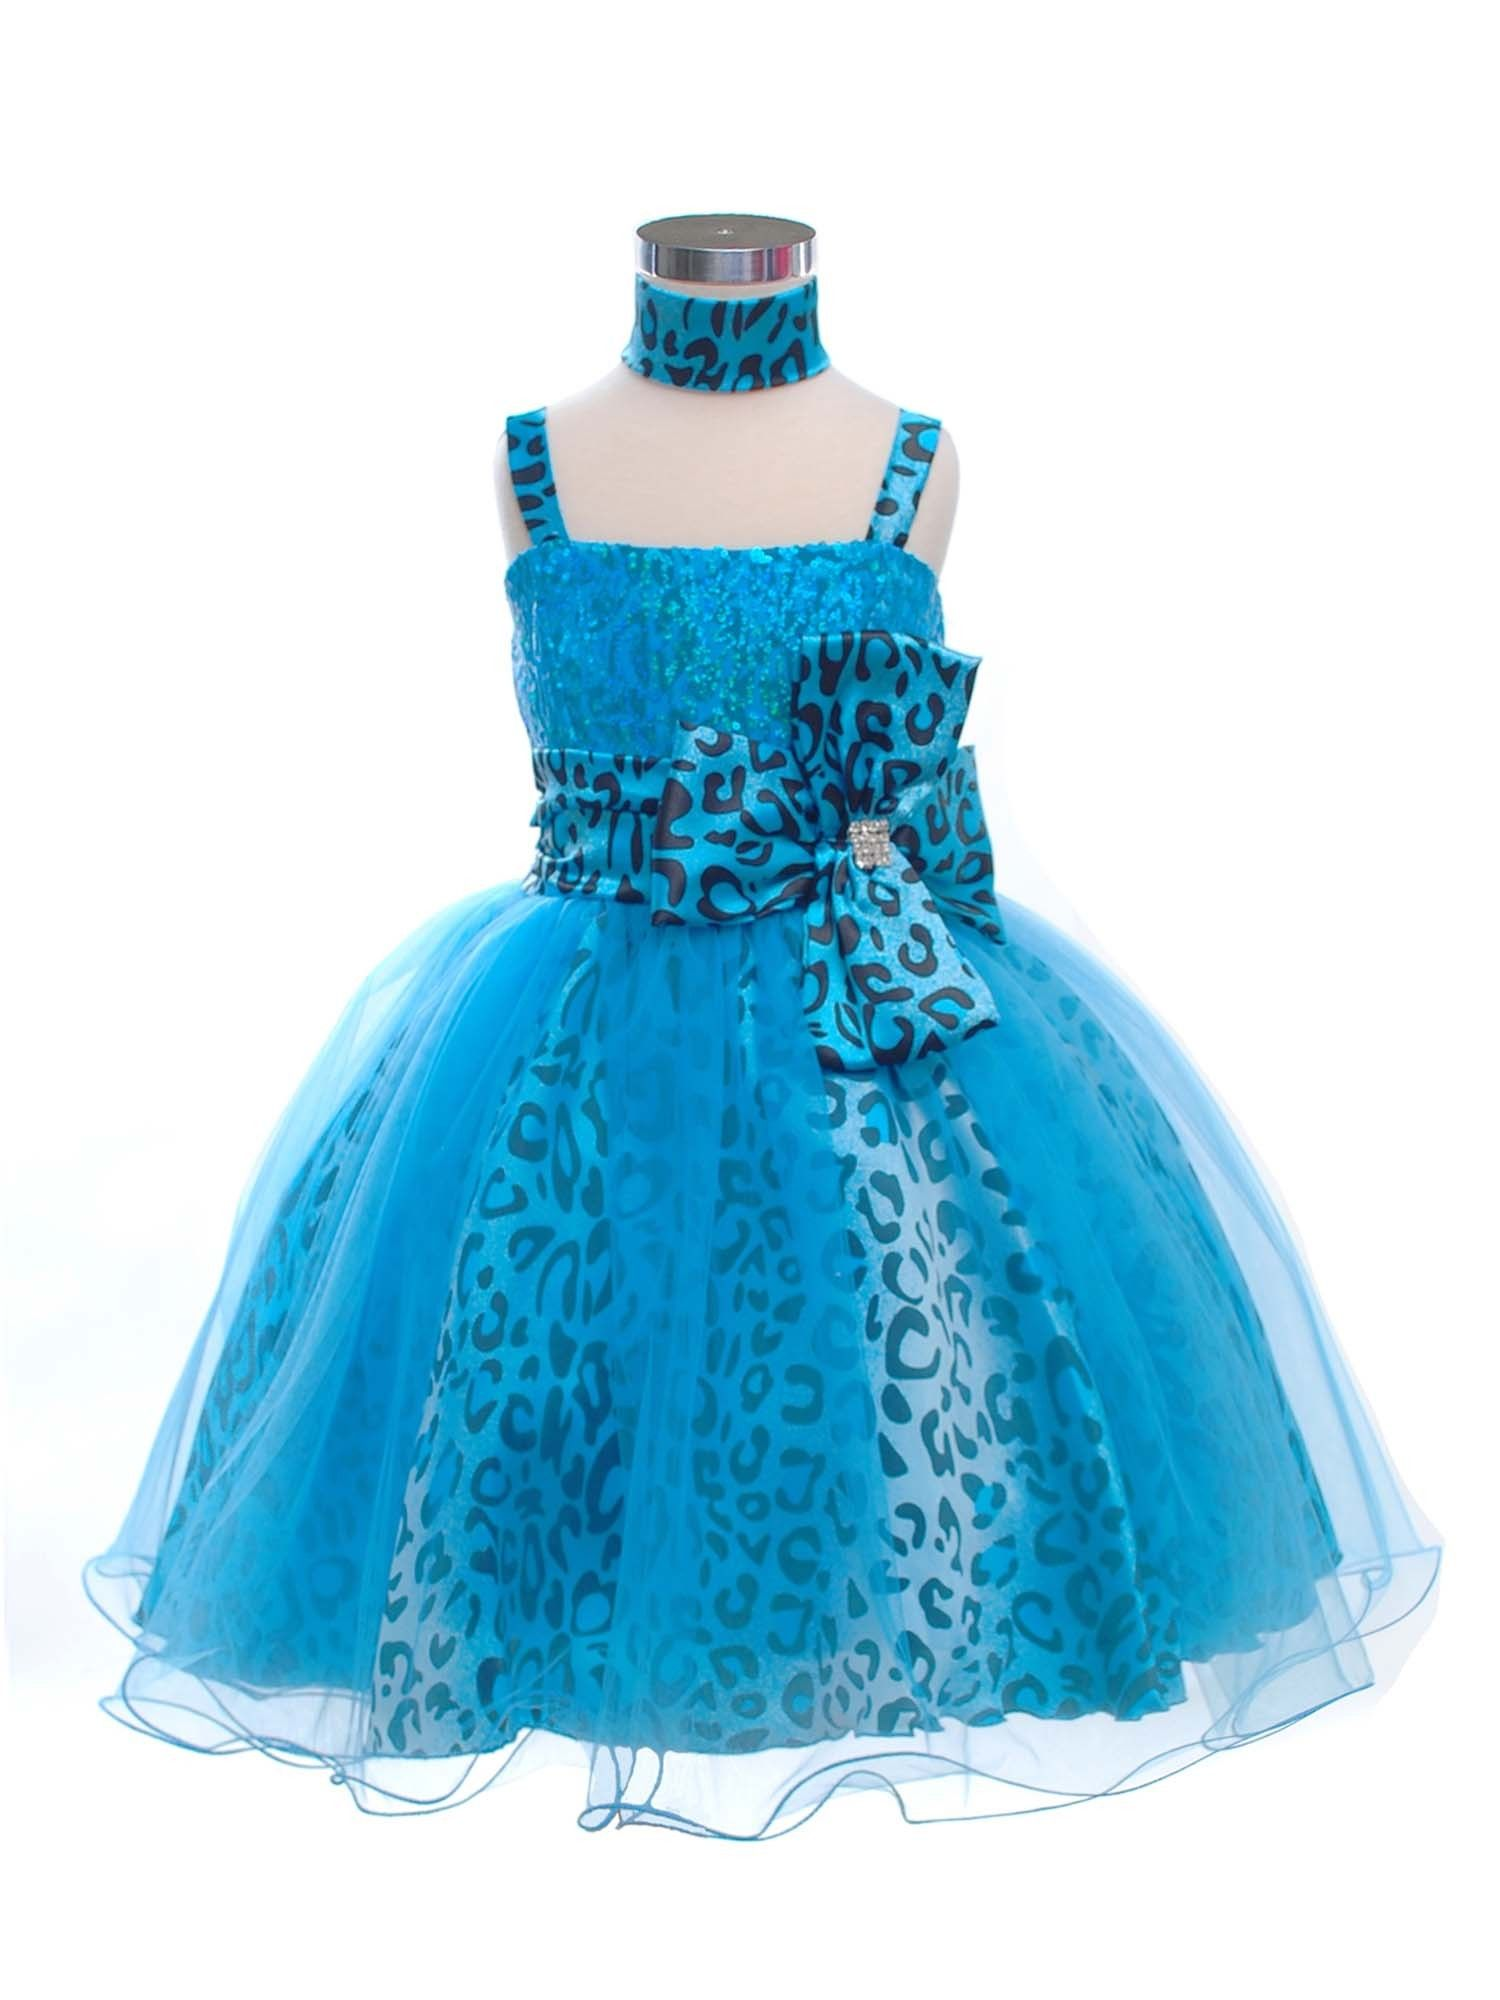 turquoise flower girl dresses uk - Google Search | baby dress ...